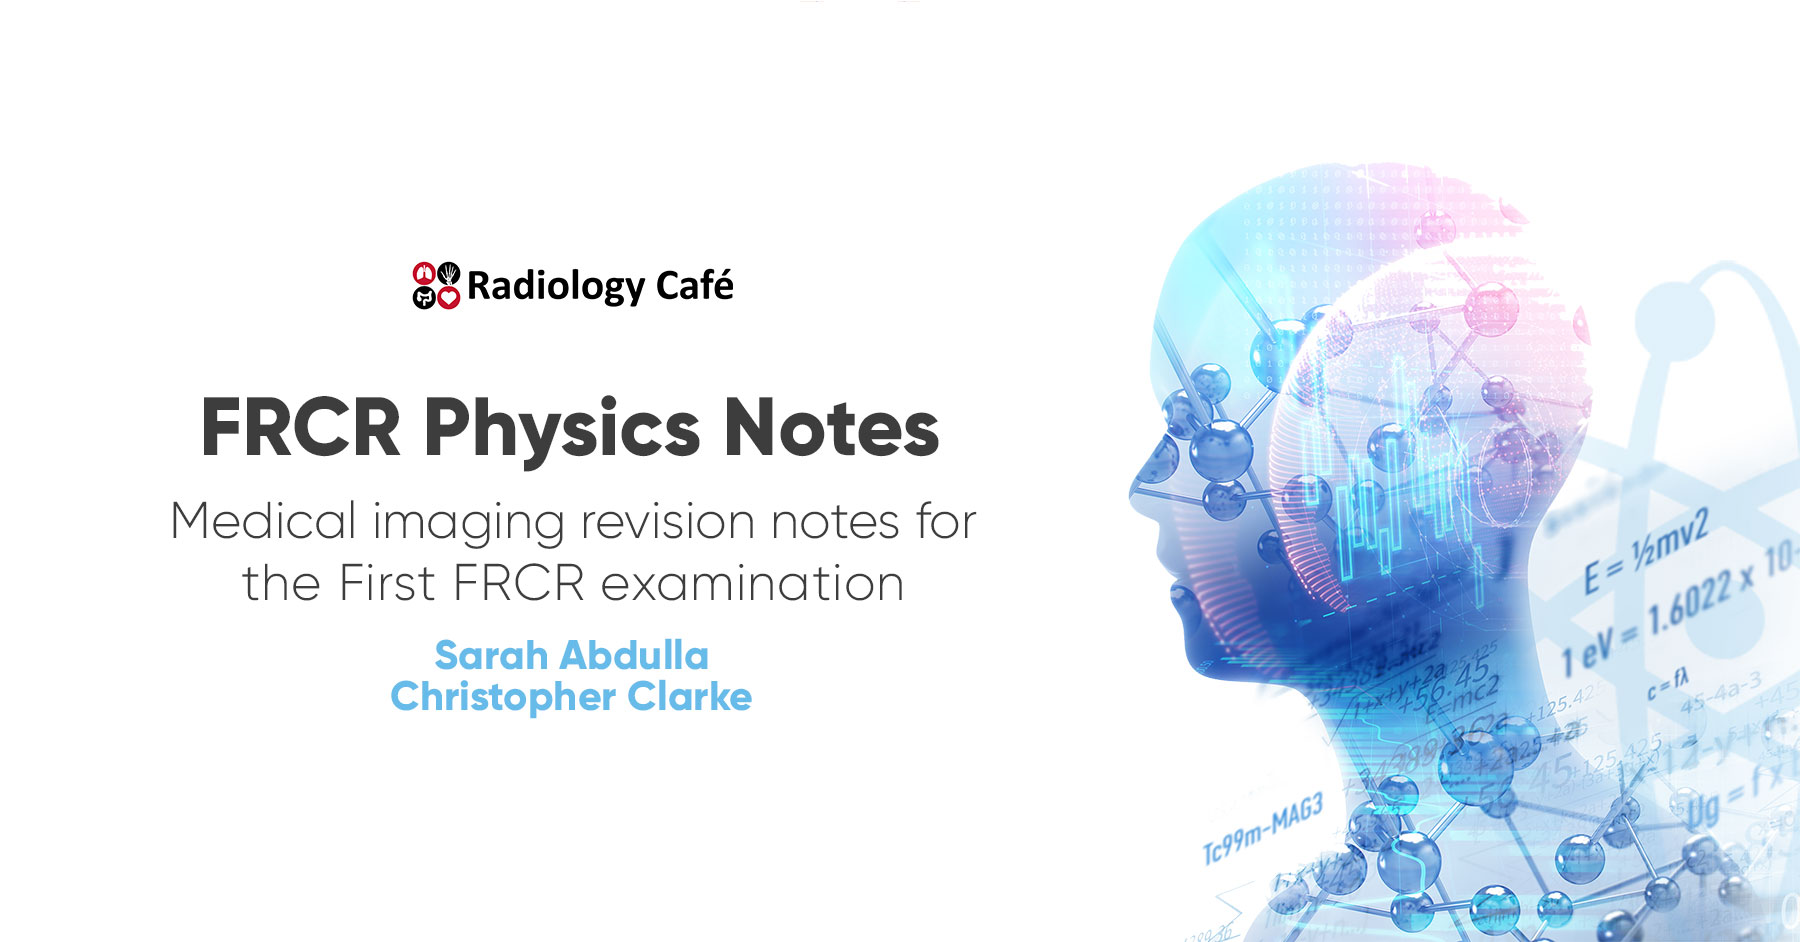 physics-notes-banner Job Application Form Online Free on free online invoice forms, free printable job application online, free job application form template, free online business forms, free employee information forms, free online order forms, free health insurance forms, free nursing forms, free contact information forms, free online job opportunities, free online proposal forms, free employment forms,